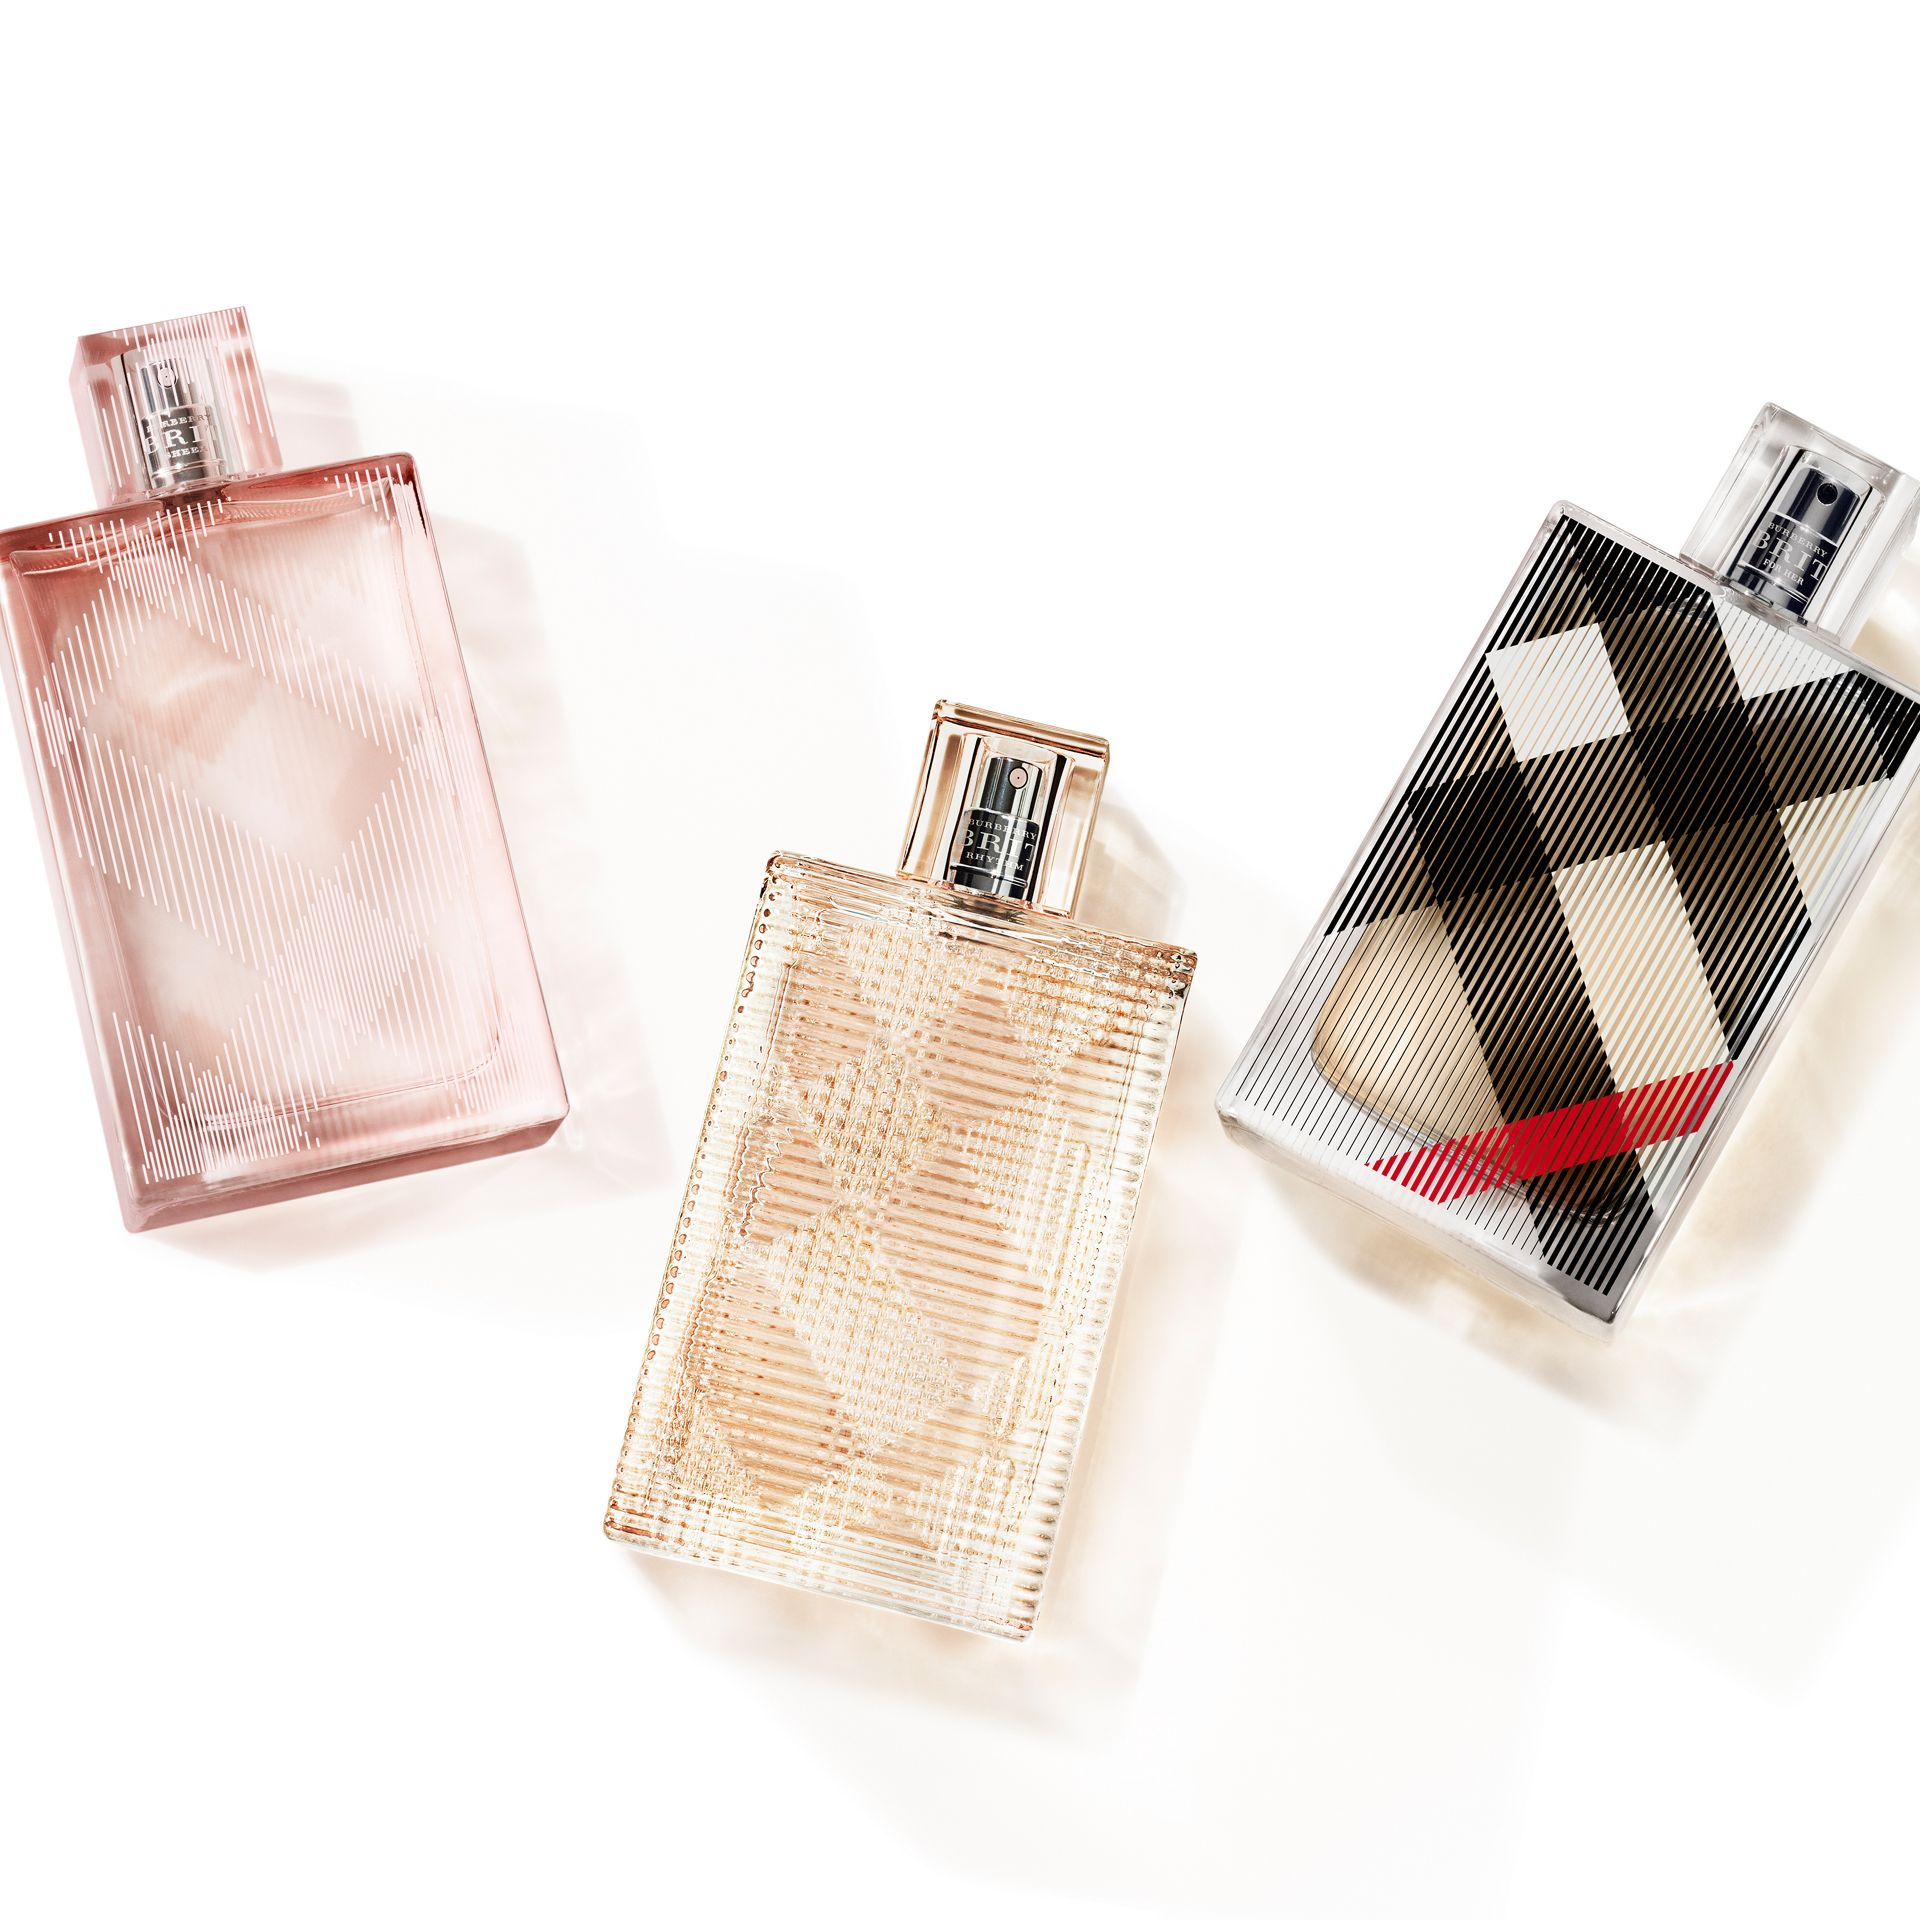 Burberry Brit For Her Eau de Parfum 30ml - Women | Burberry Singapore - gallery image 3